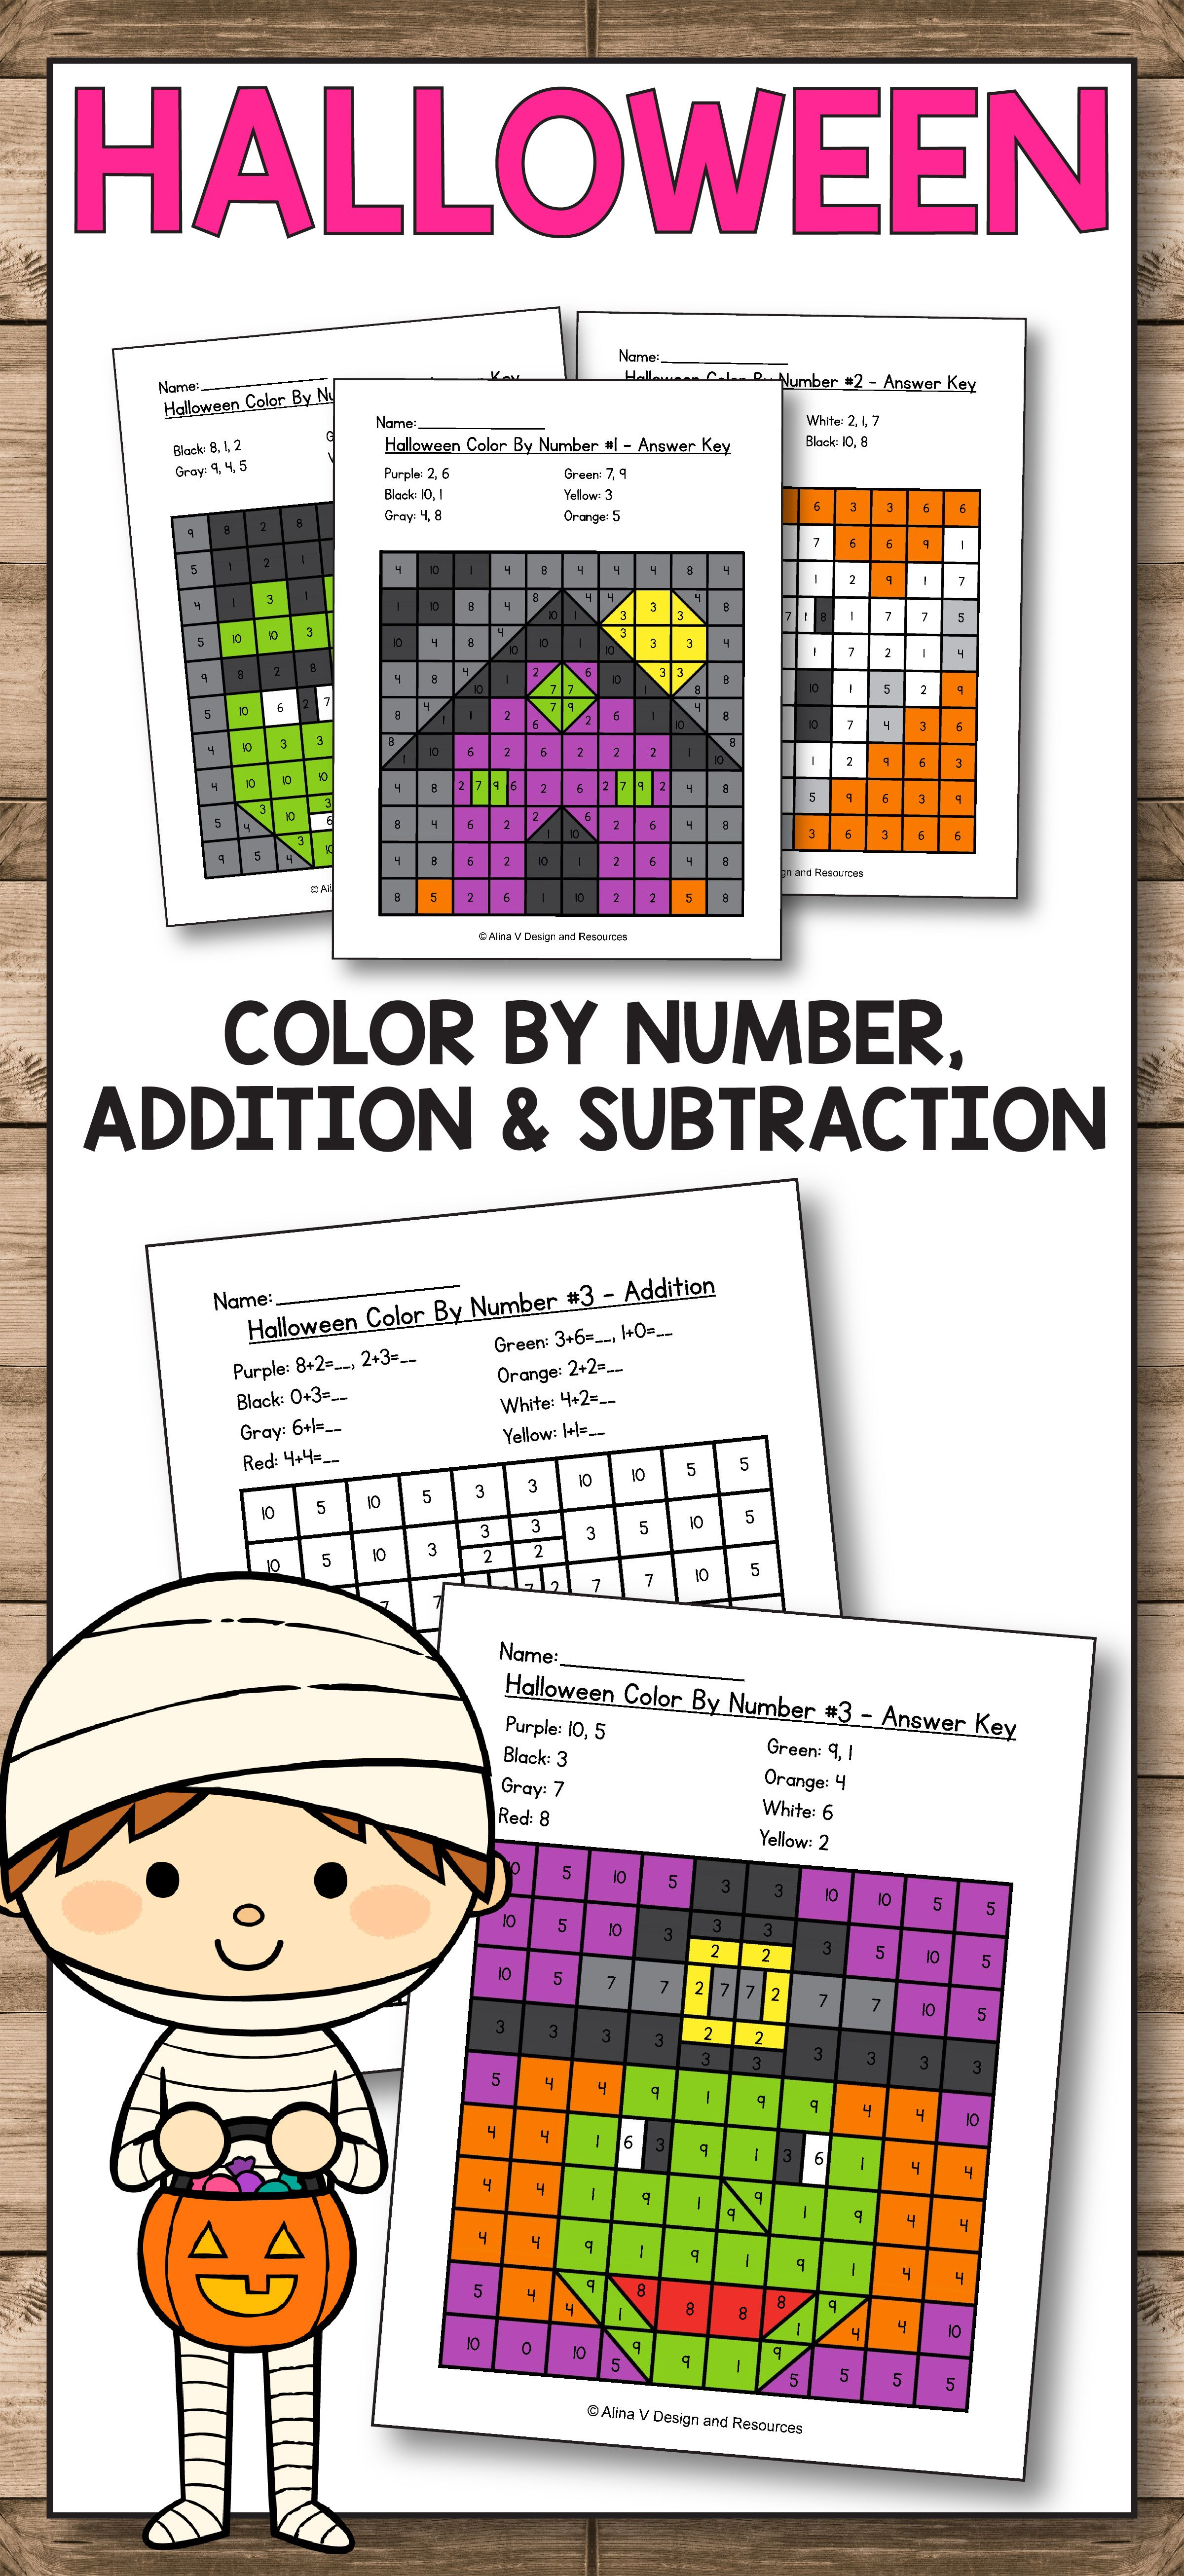 small resolution of Halloween Color By Number - Halloween Math Worksheets   Halloween math  worksheets